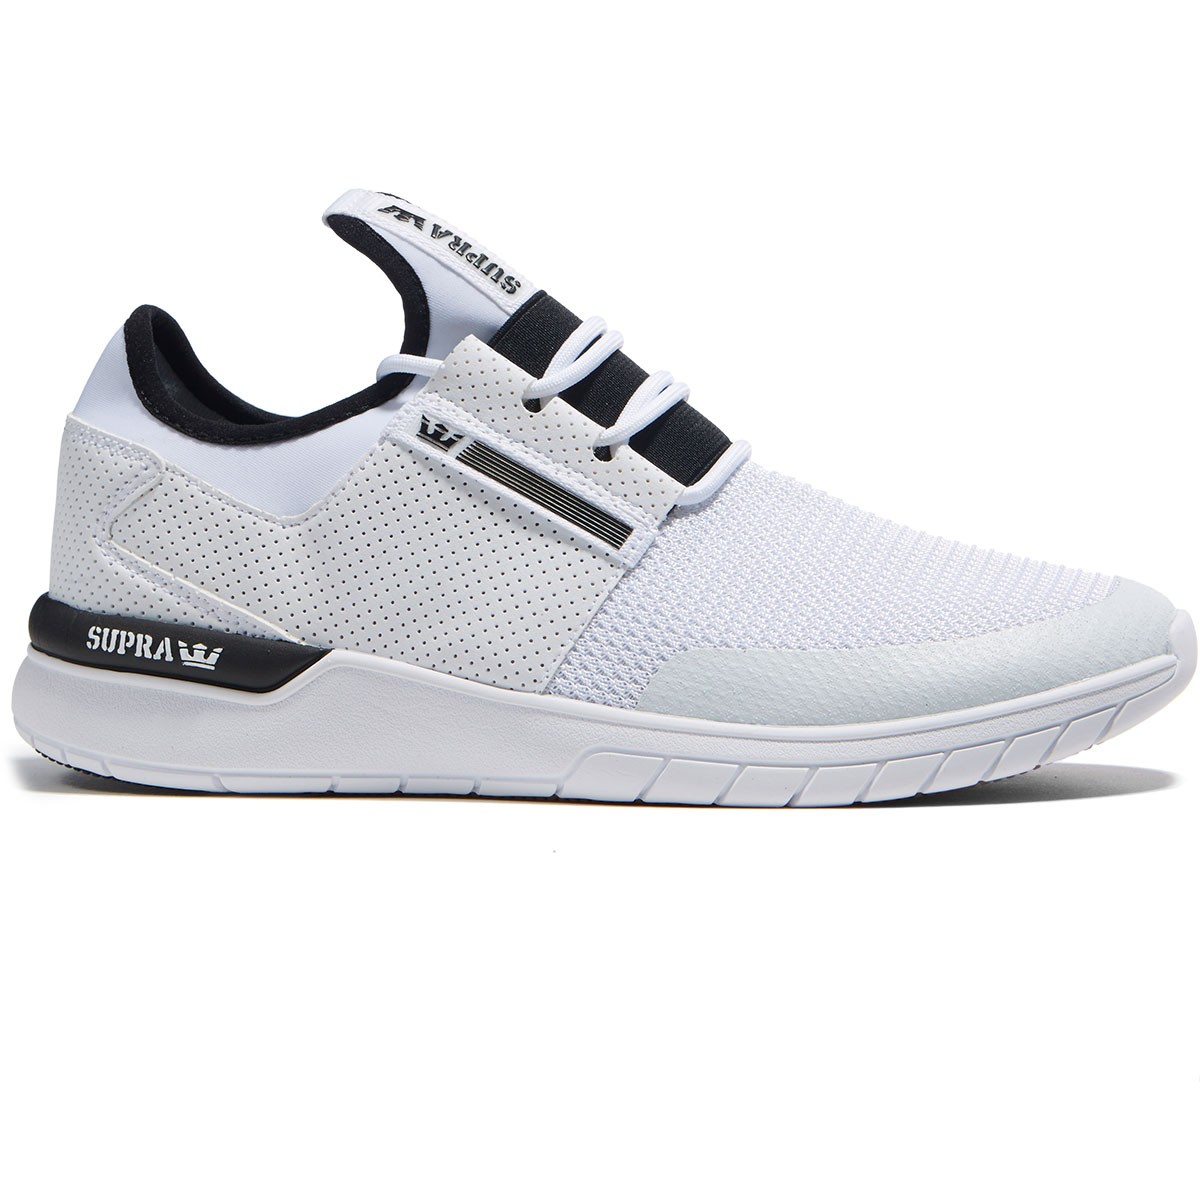 27d001032d6e Supra Flow Run Shoes - White White - 8.0